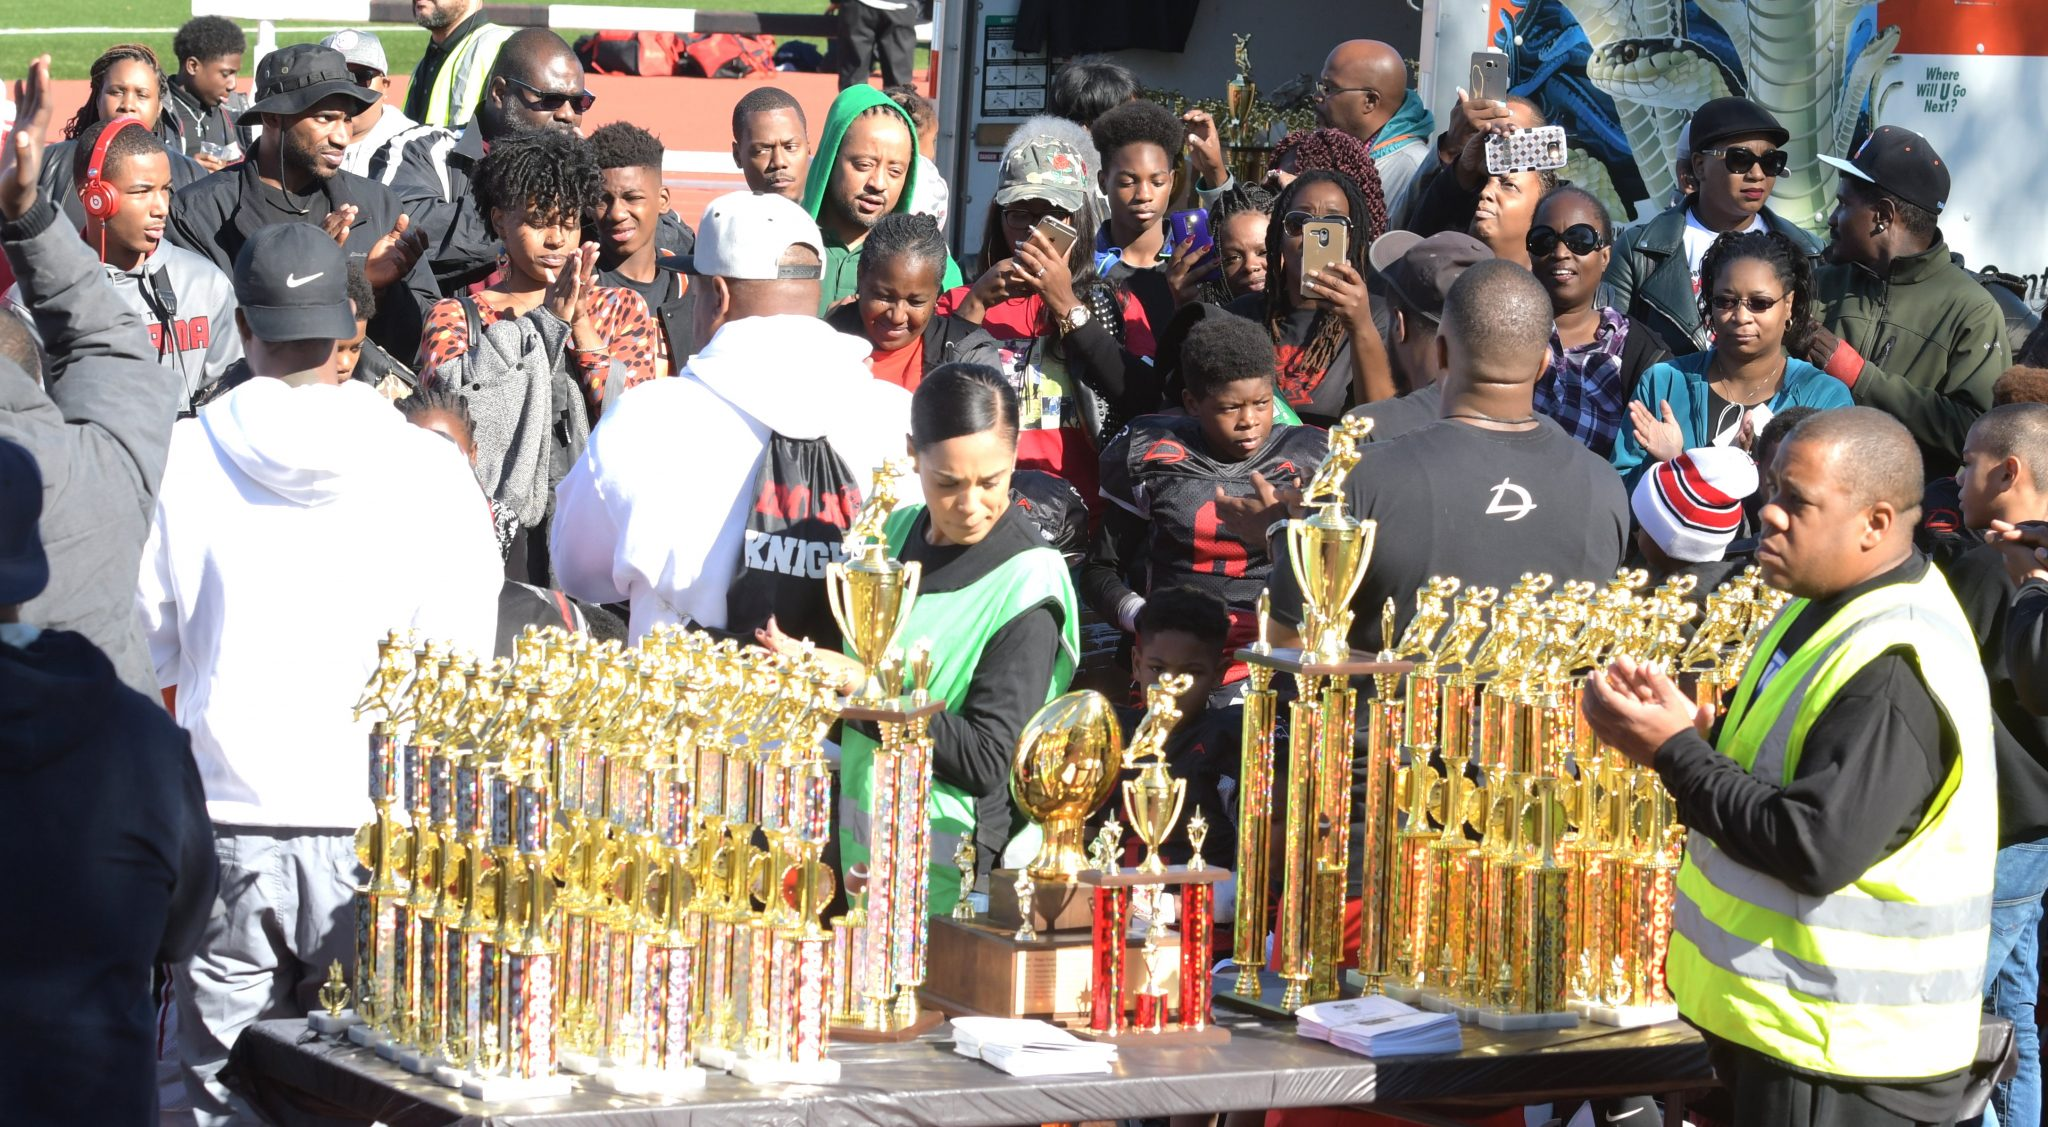 Fans and parents join game participants for the trophy presentation following the championship game for the 10U division of American Youth Football's Capital Beltway League at Spingarn High School Field in northeast D.C. on Saturday, Nov. 5.